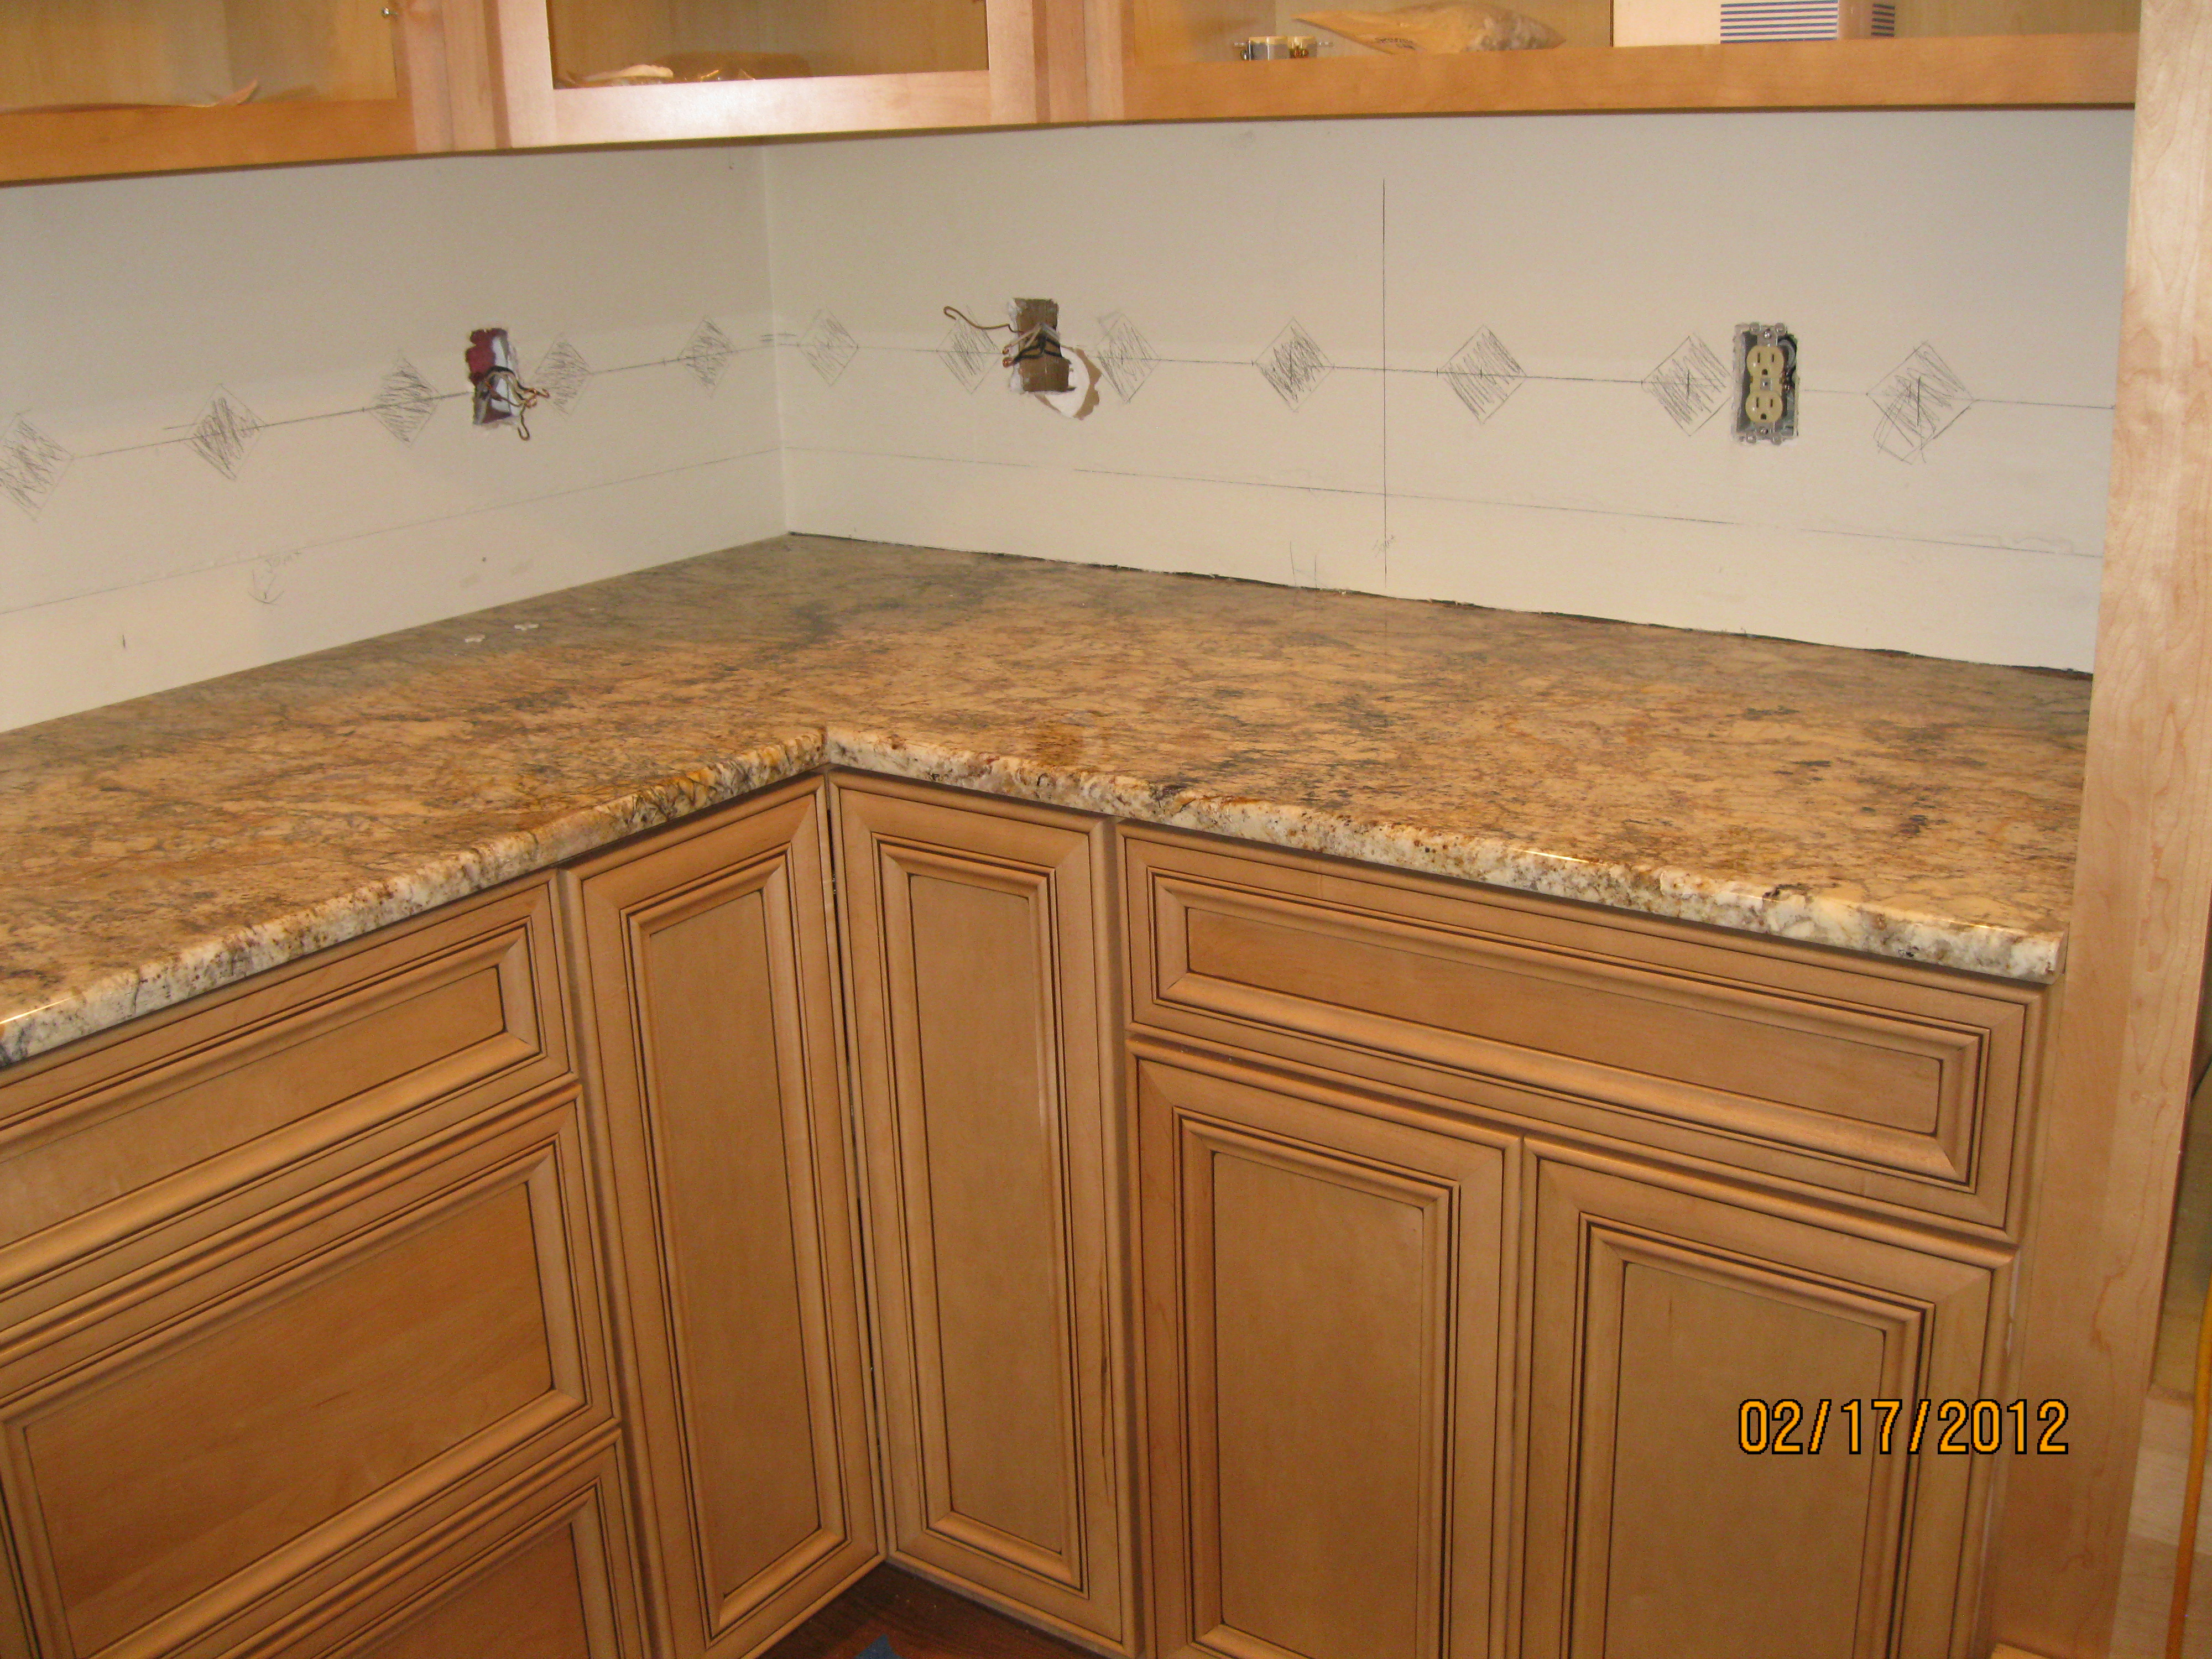 west chester kitchen countertops kitchen countertop height This